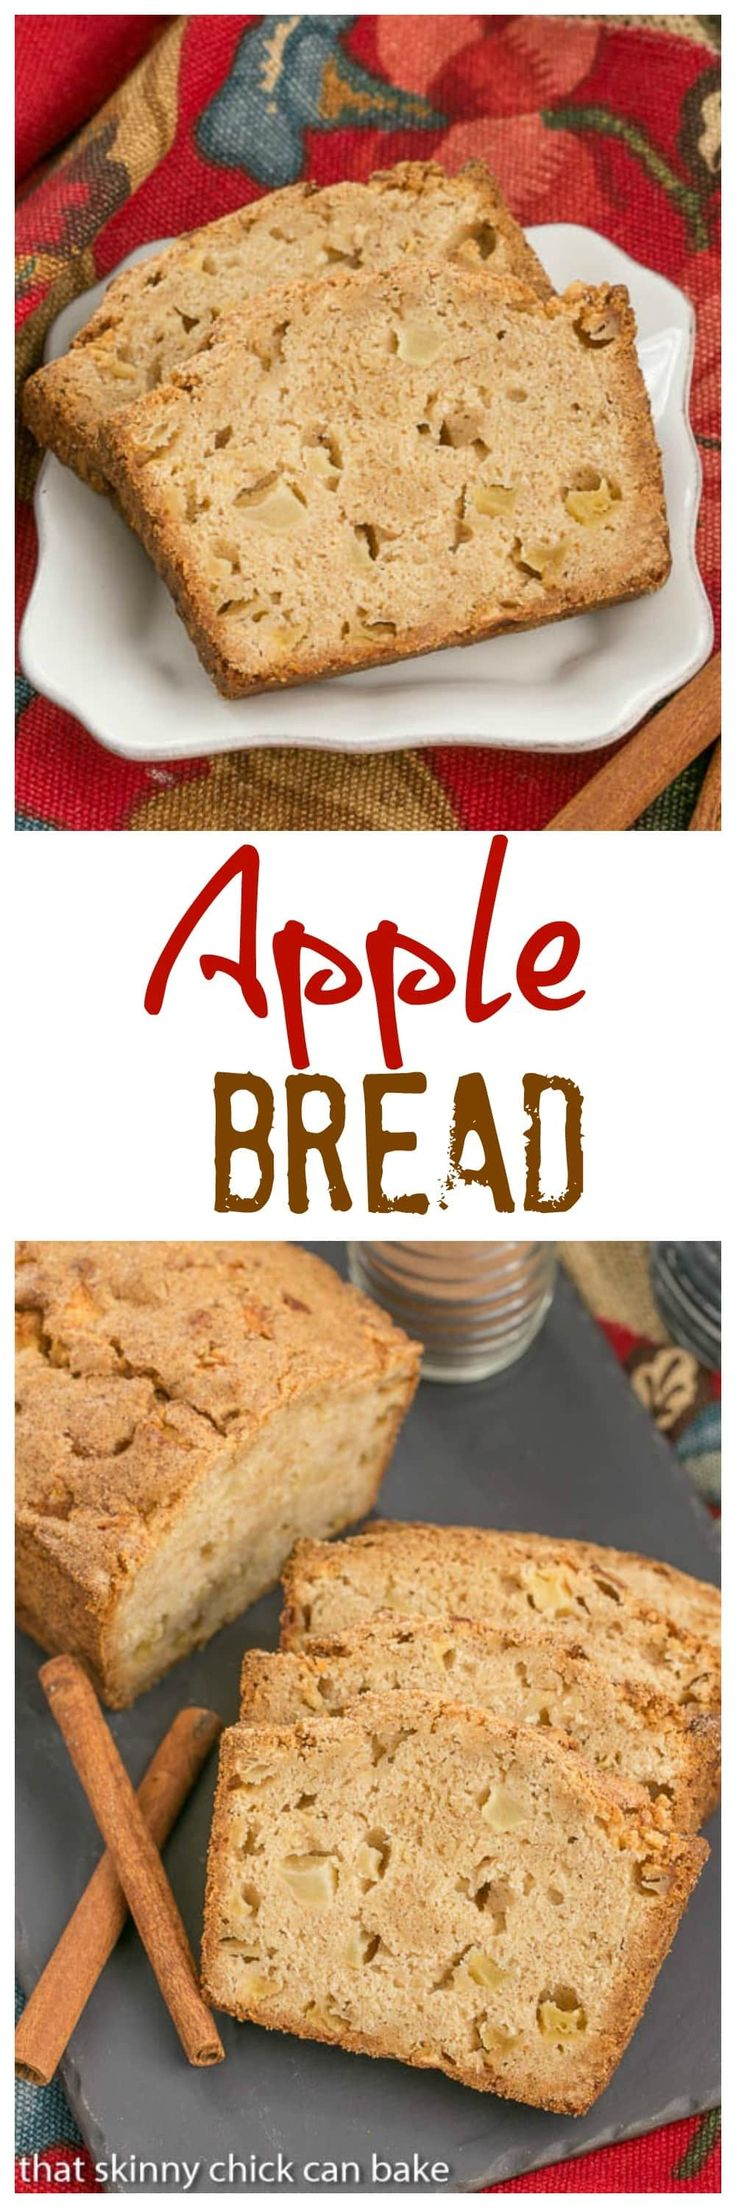 Apple Bread | This moist, cinnamon spiced apple bread is perfect for snacking, breakfast or brunch! @lizzydo